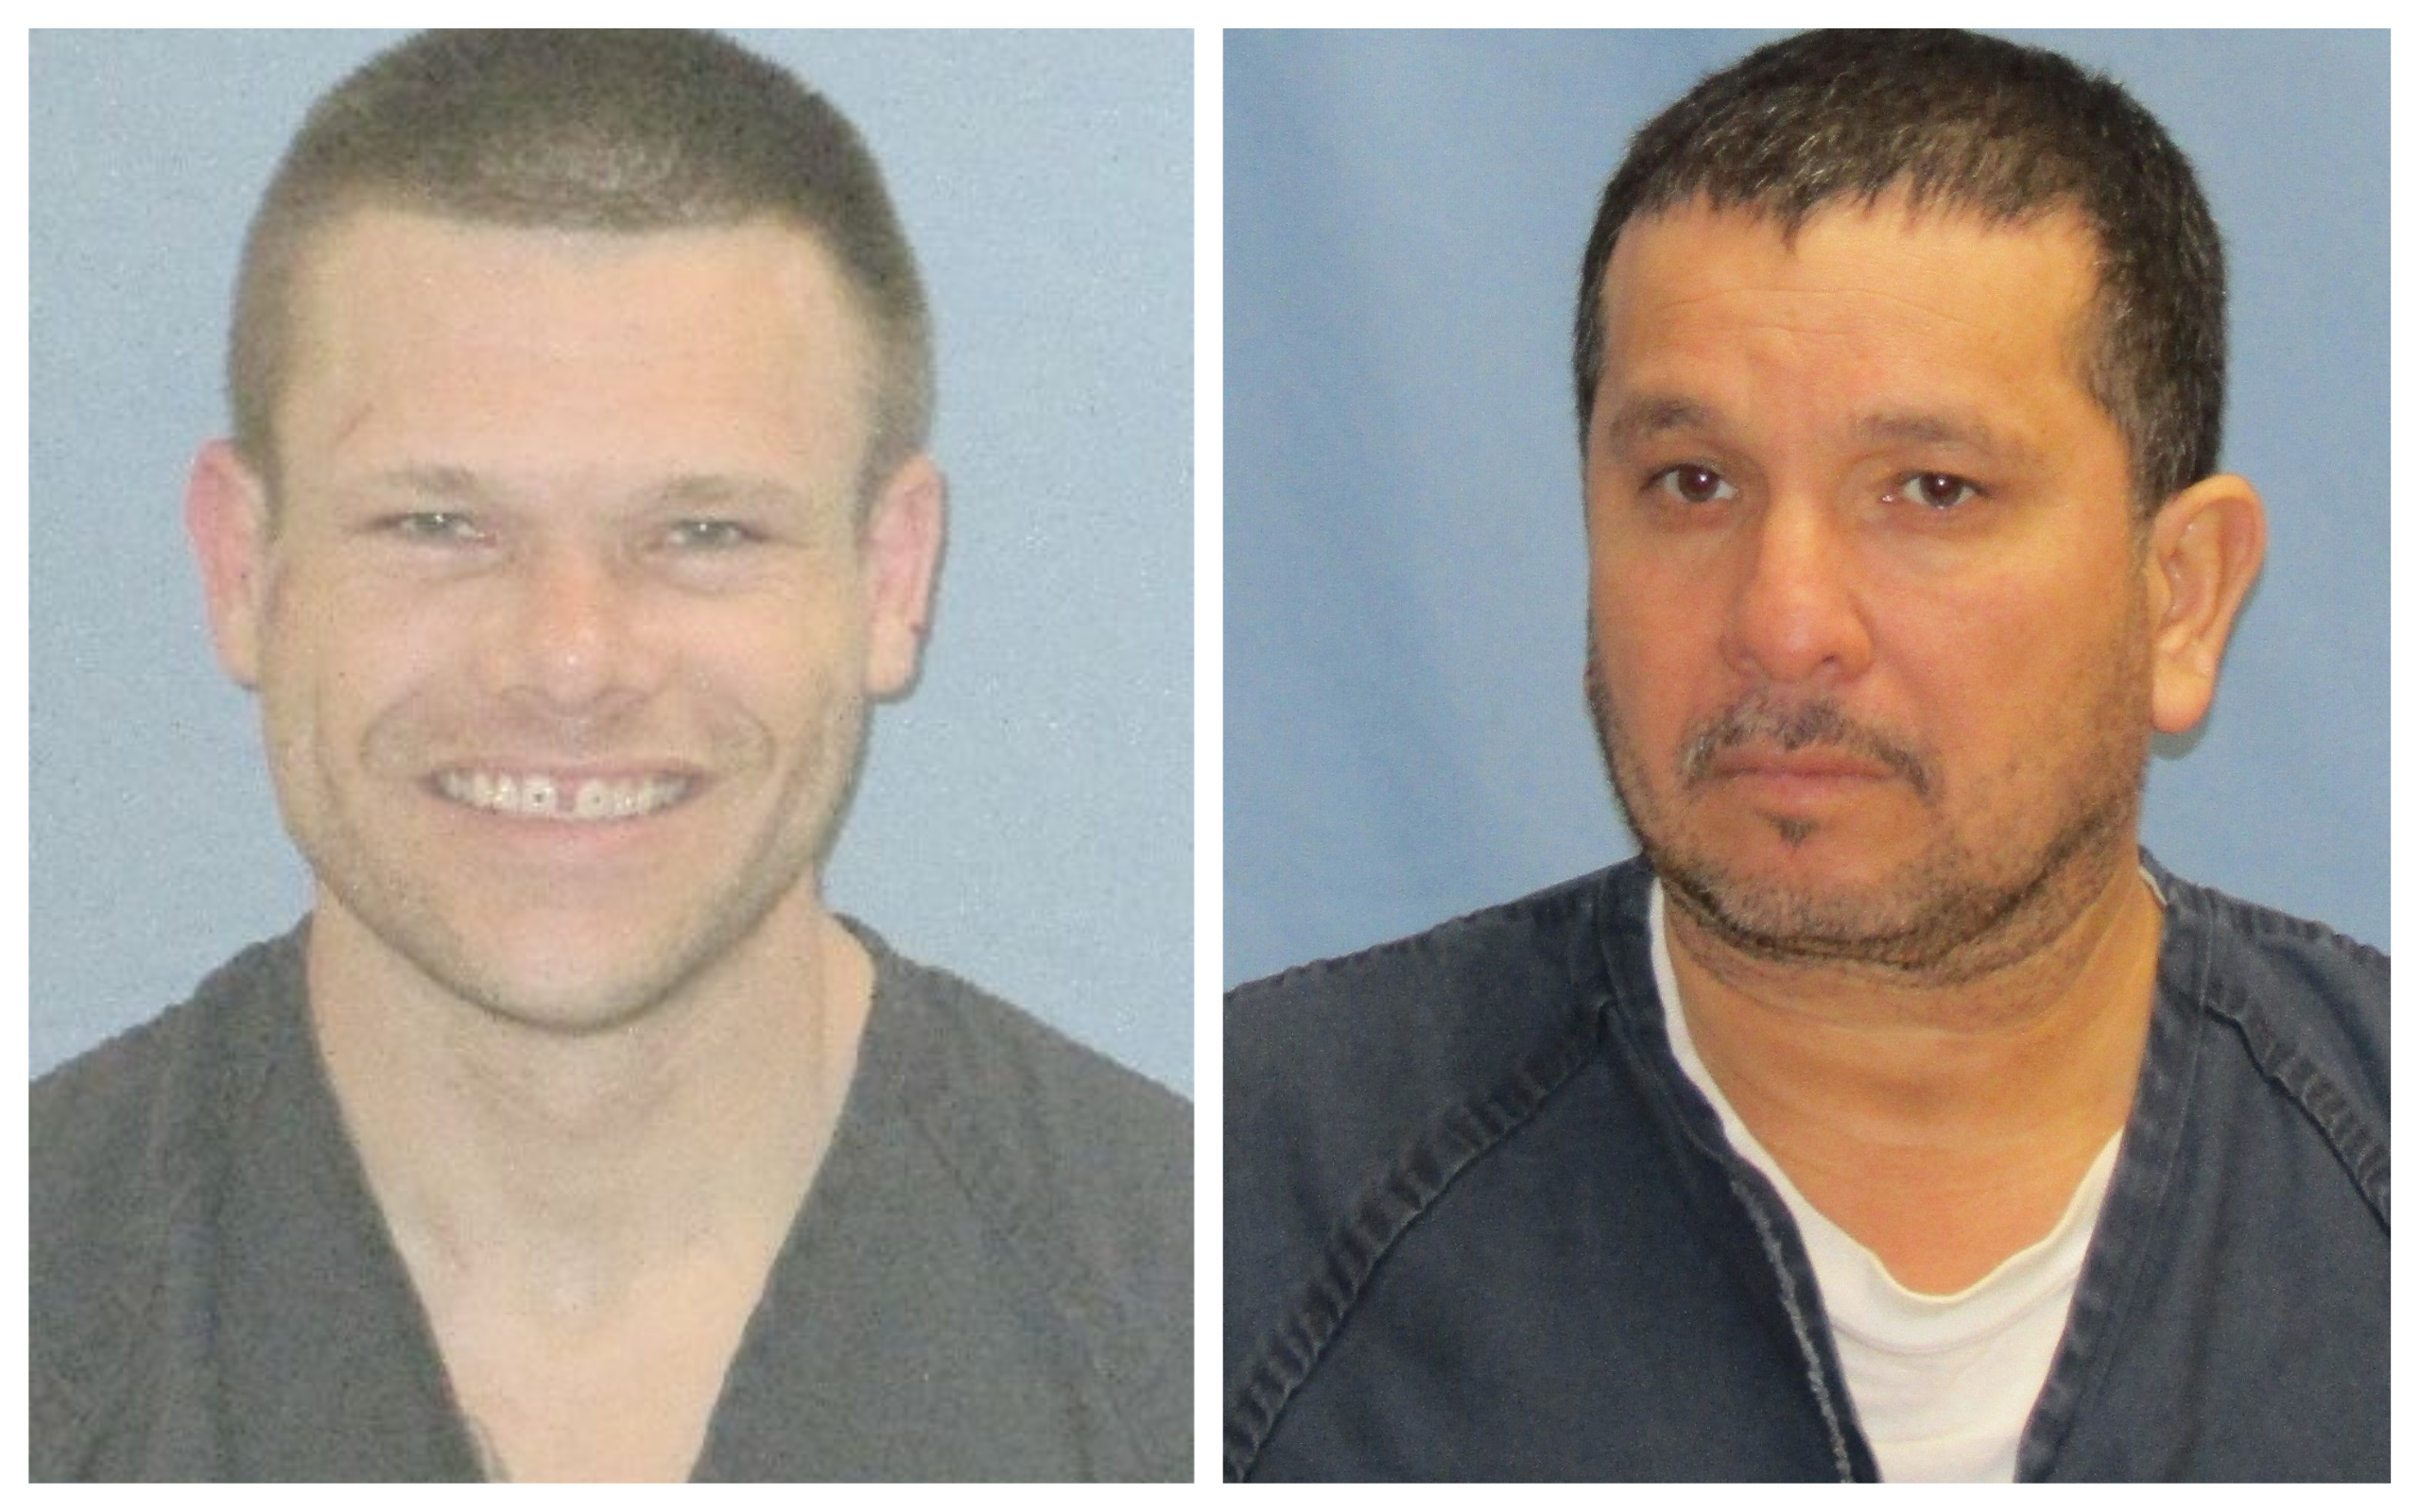 Search continues for 2 inmates who fled from Pulaski County